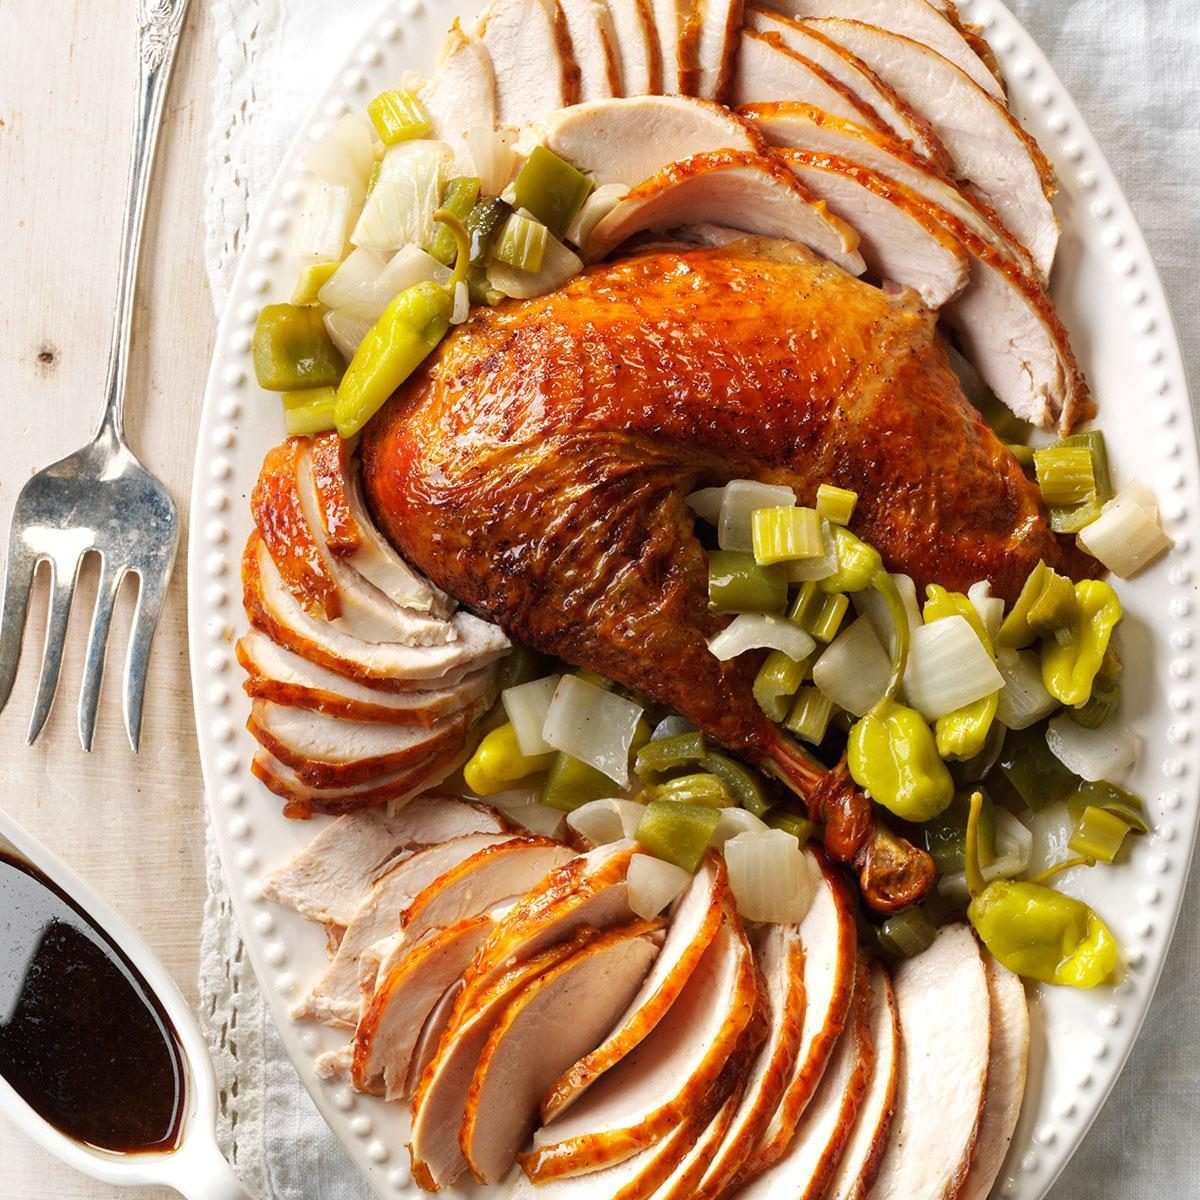 Get Recipe Creole Roasted Turkey With Holy Trinity Stuffing